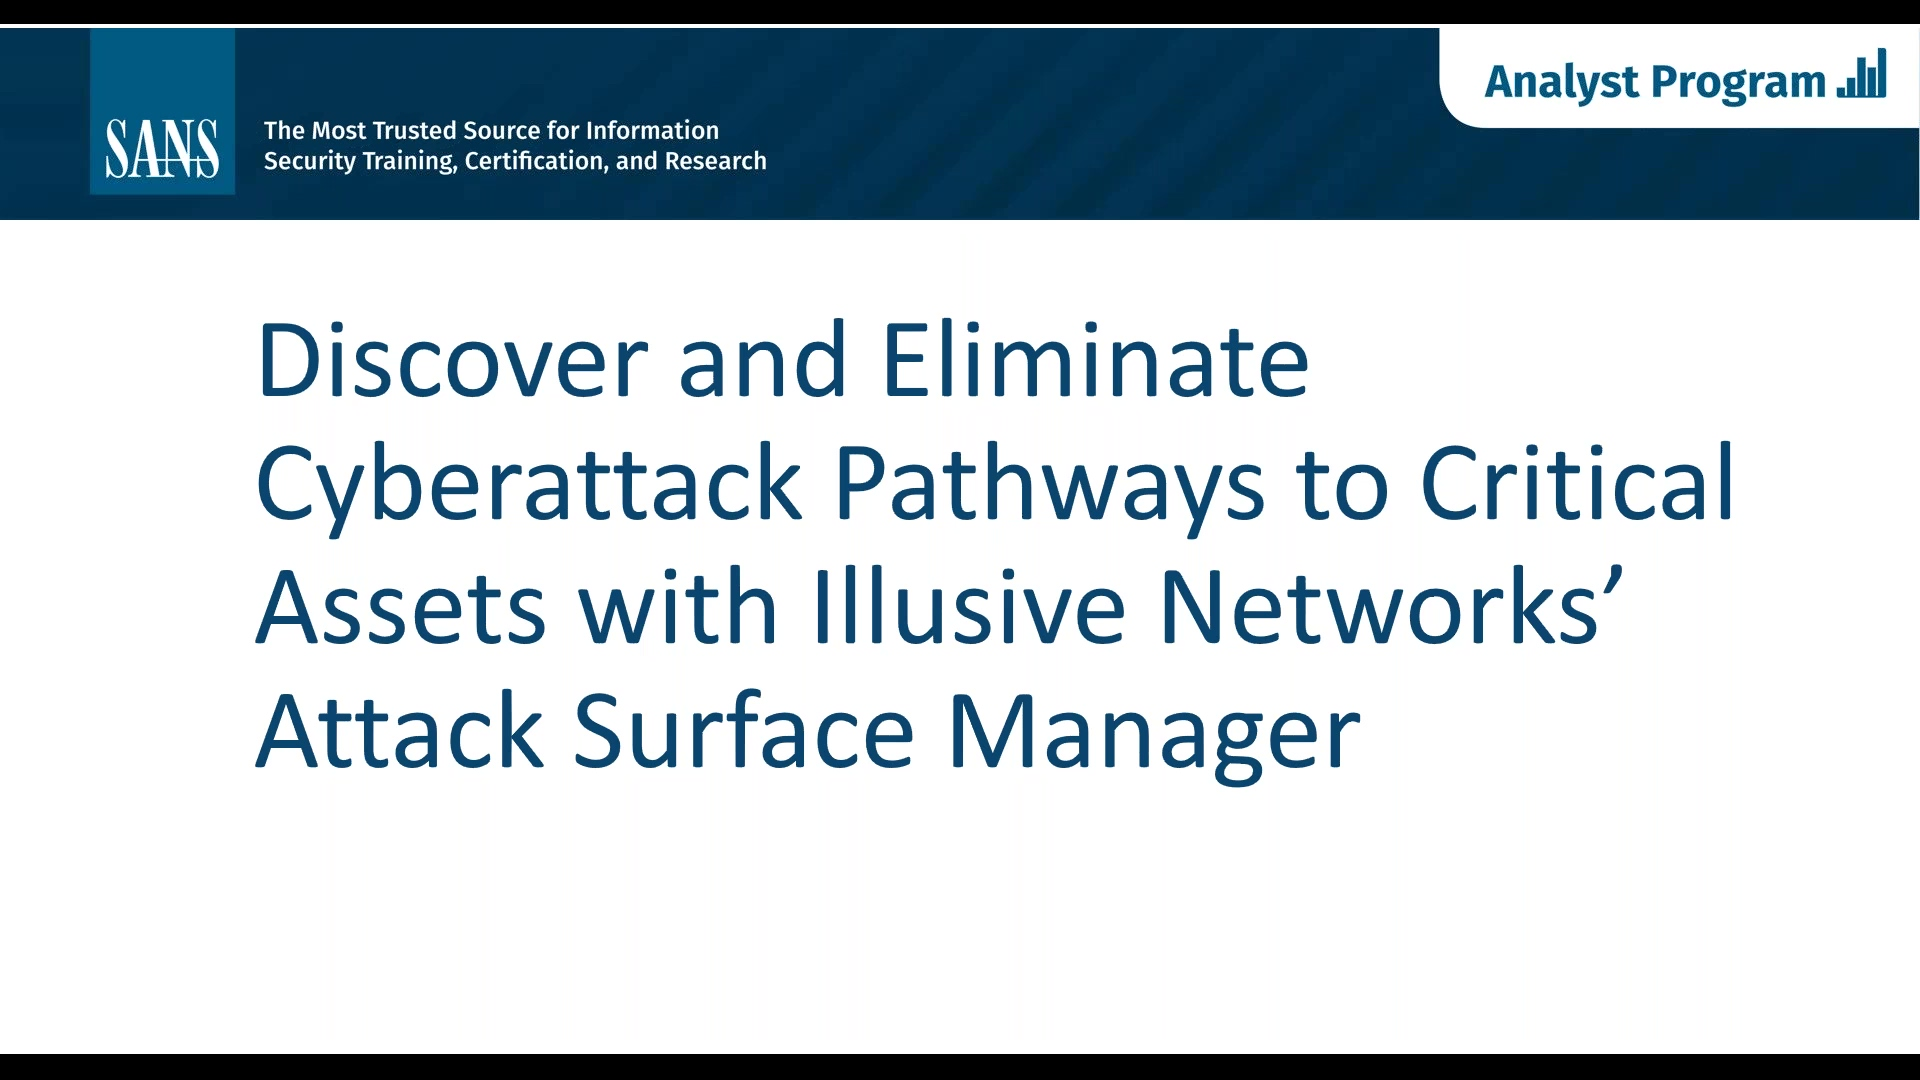 Discover and Eliminate Cyberattack Pathways to Critical Assets with Illusive Networks Attack Surface